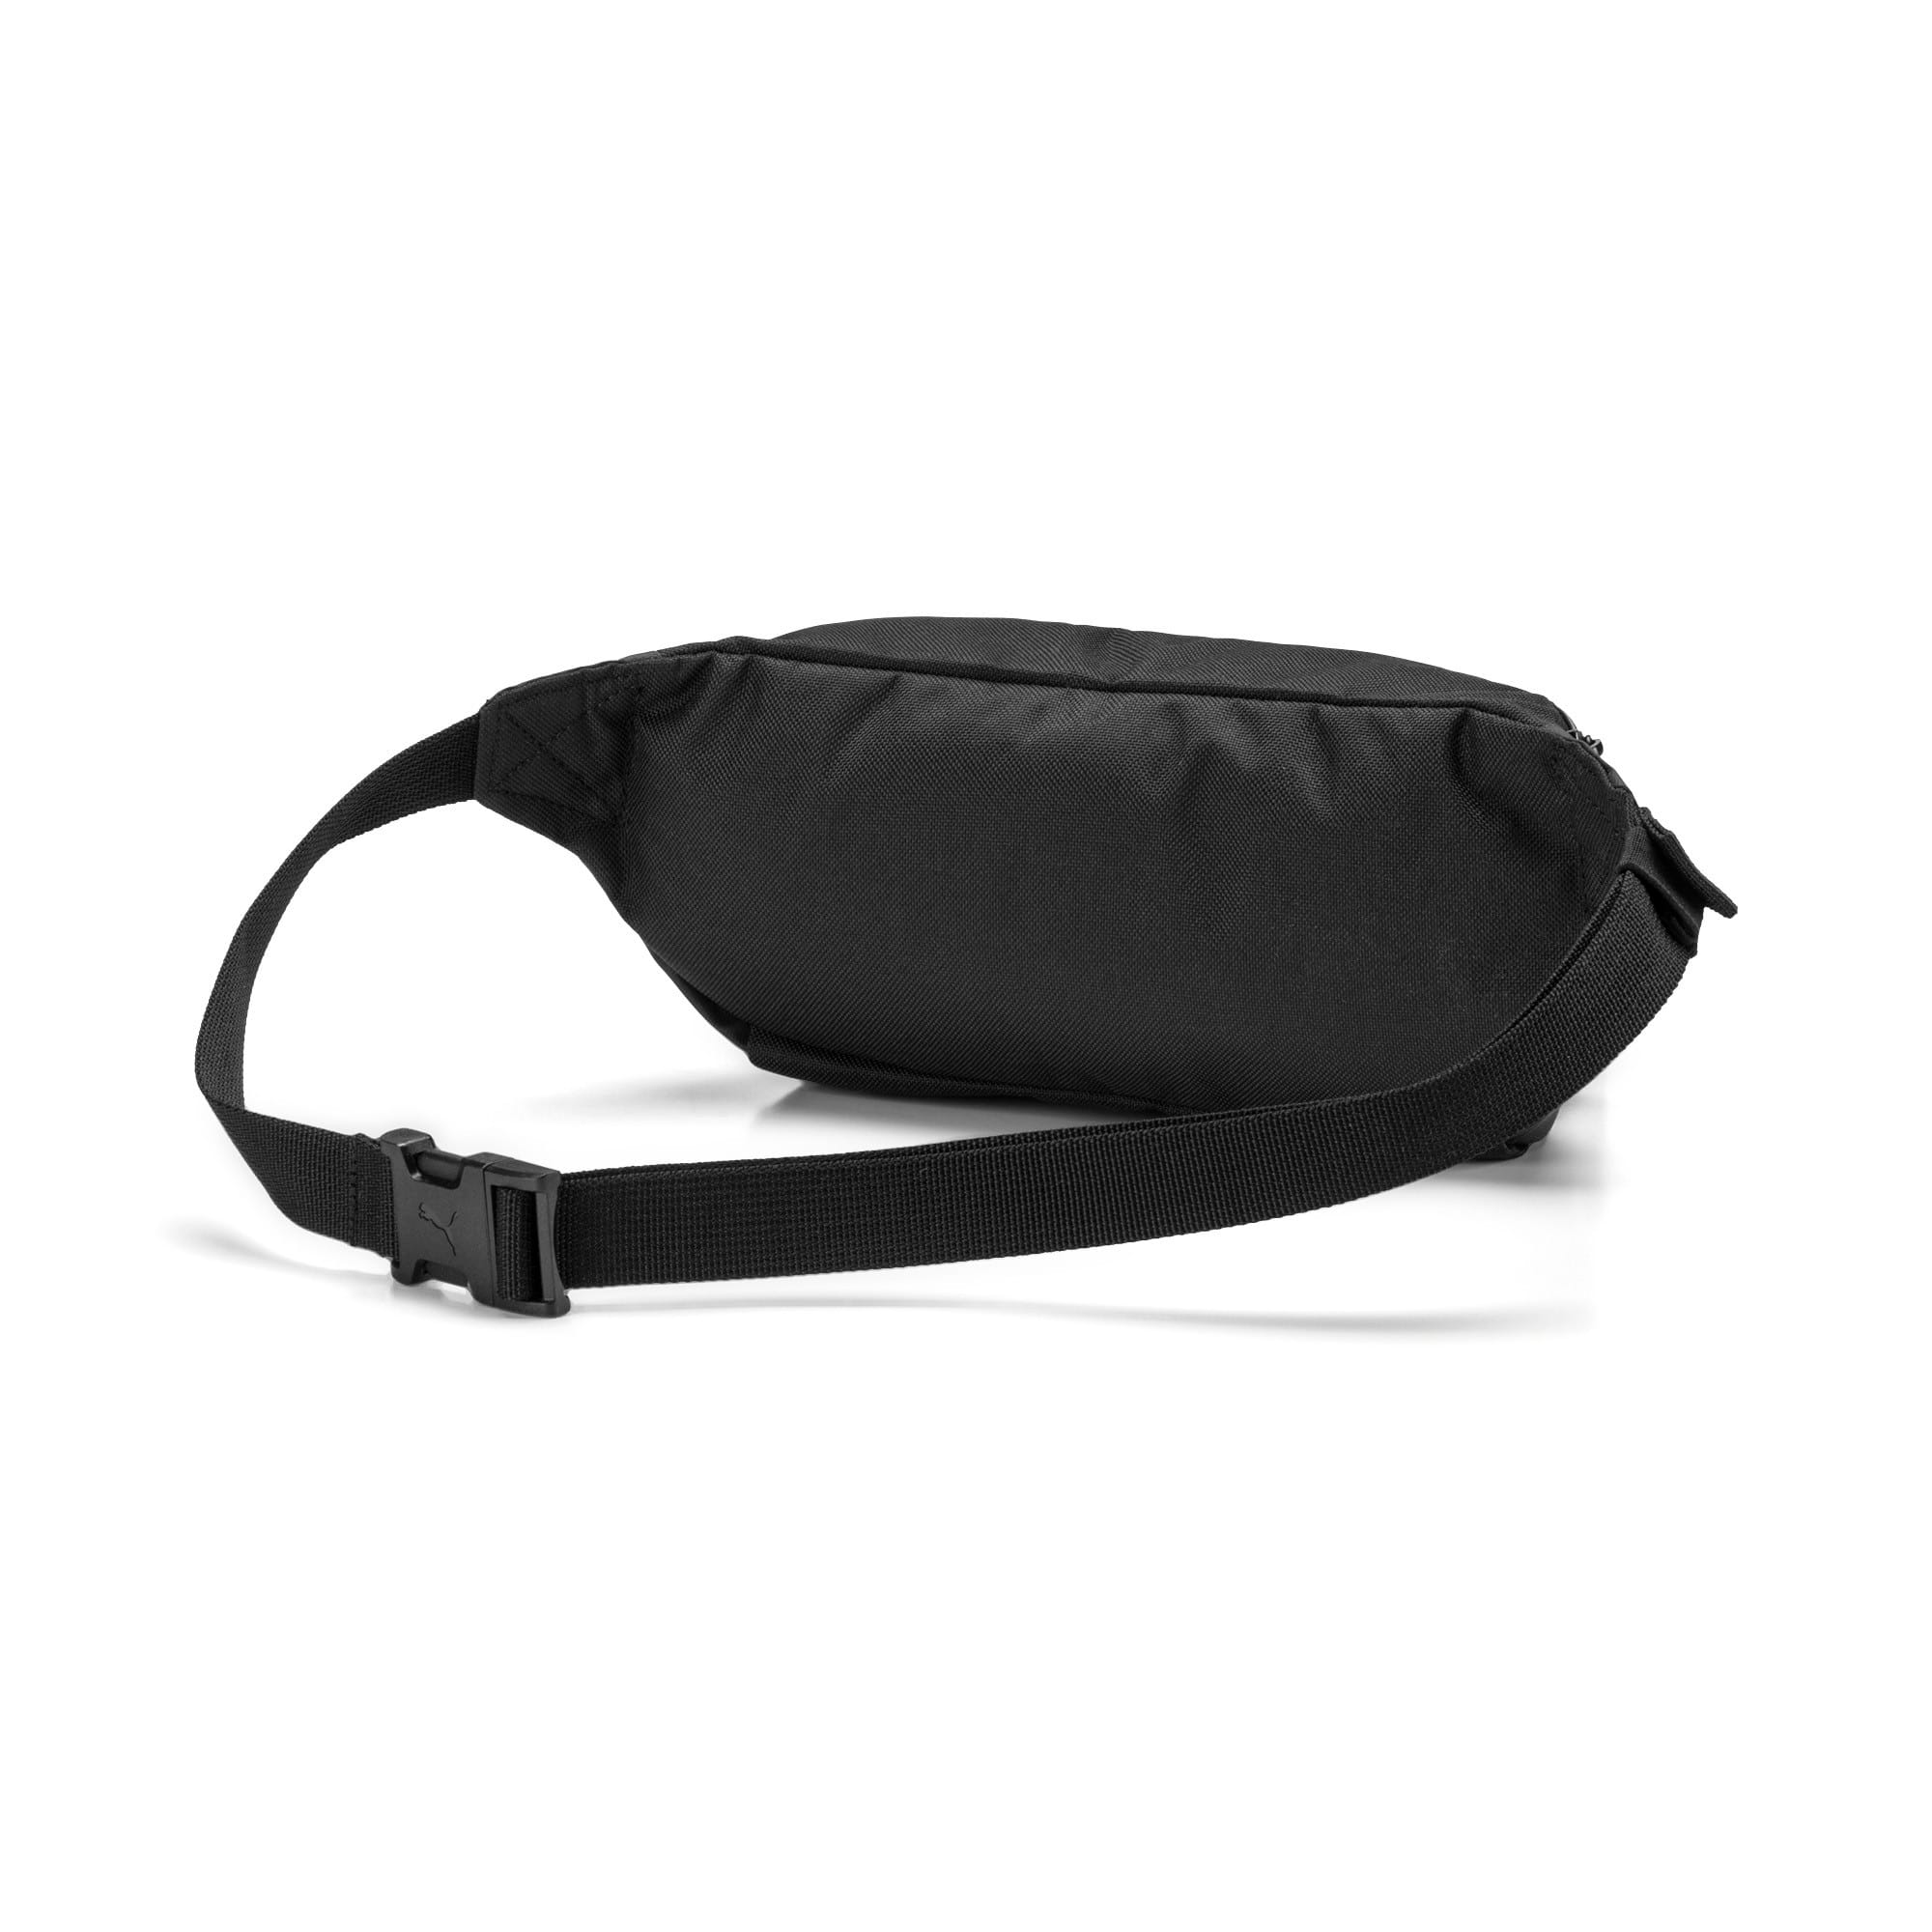 Thumbnail 2 of PUMA Academy Waist Bag, Puma Black, medium